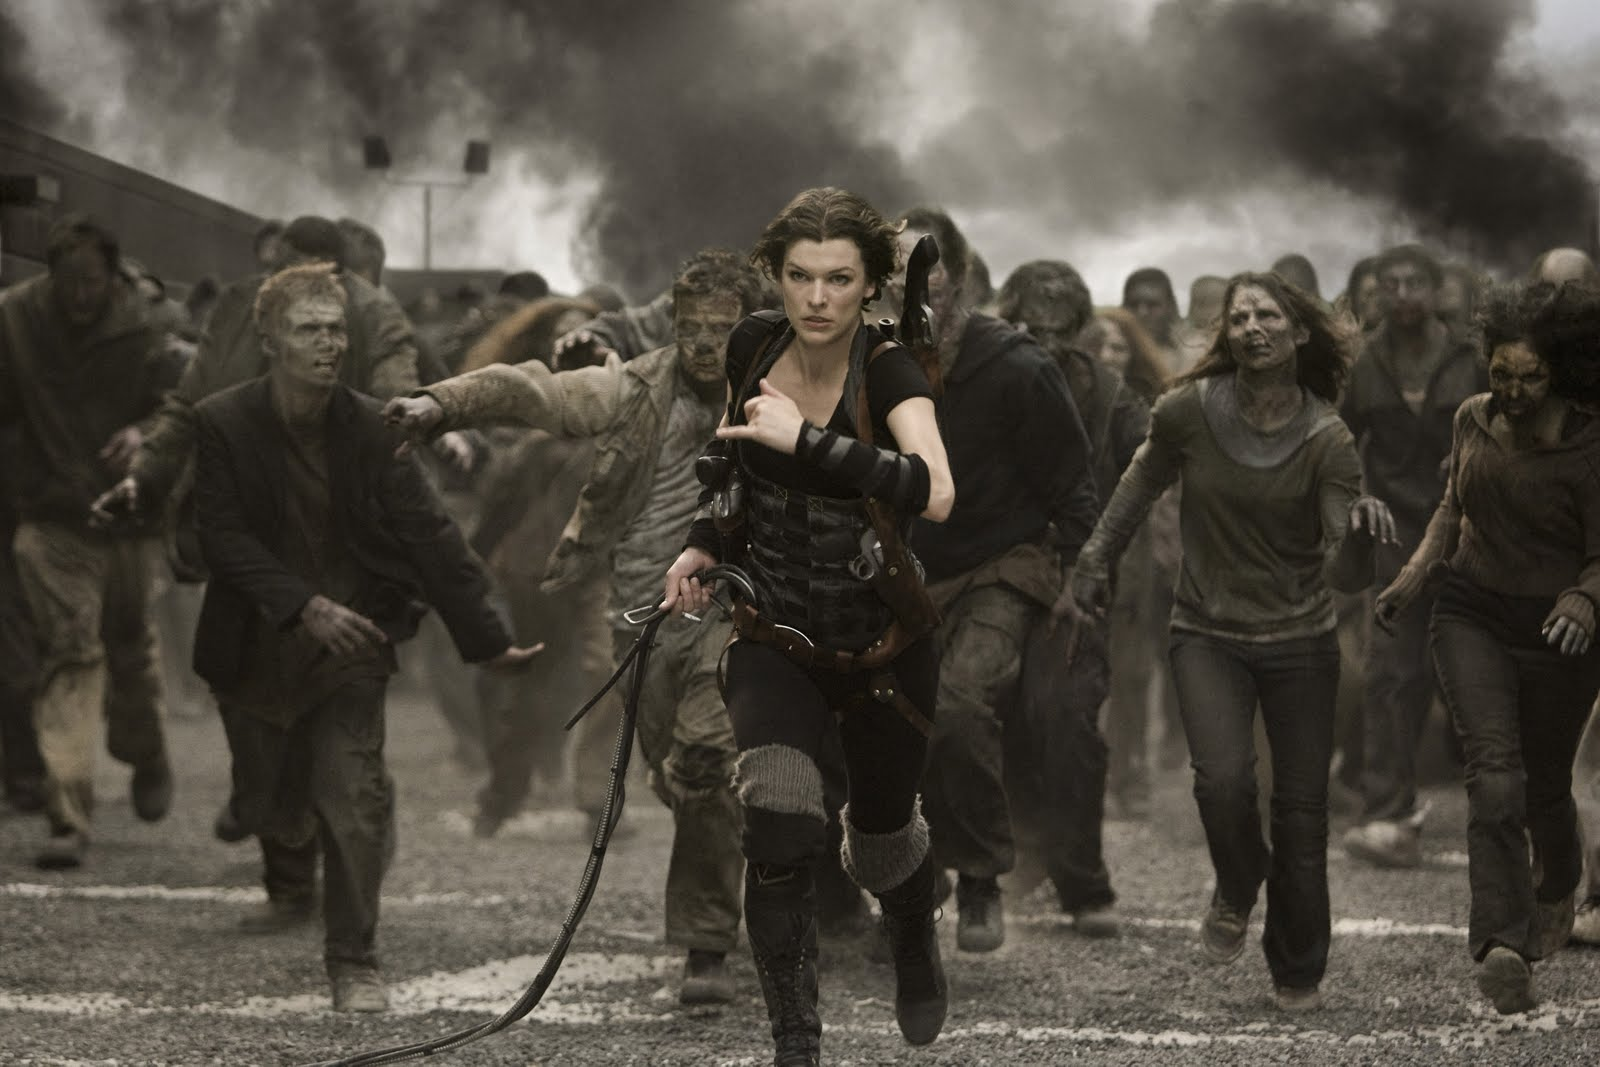 resident evil final chapter full movie download hd